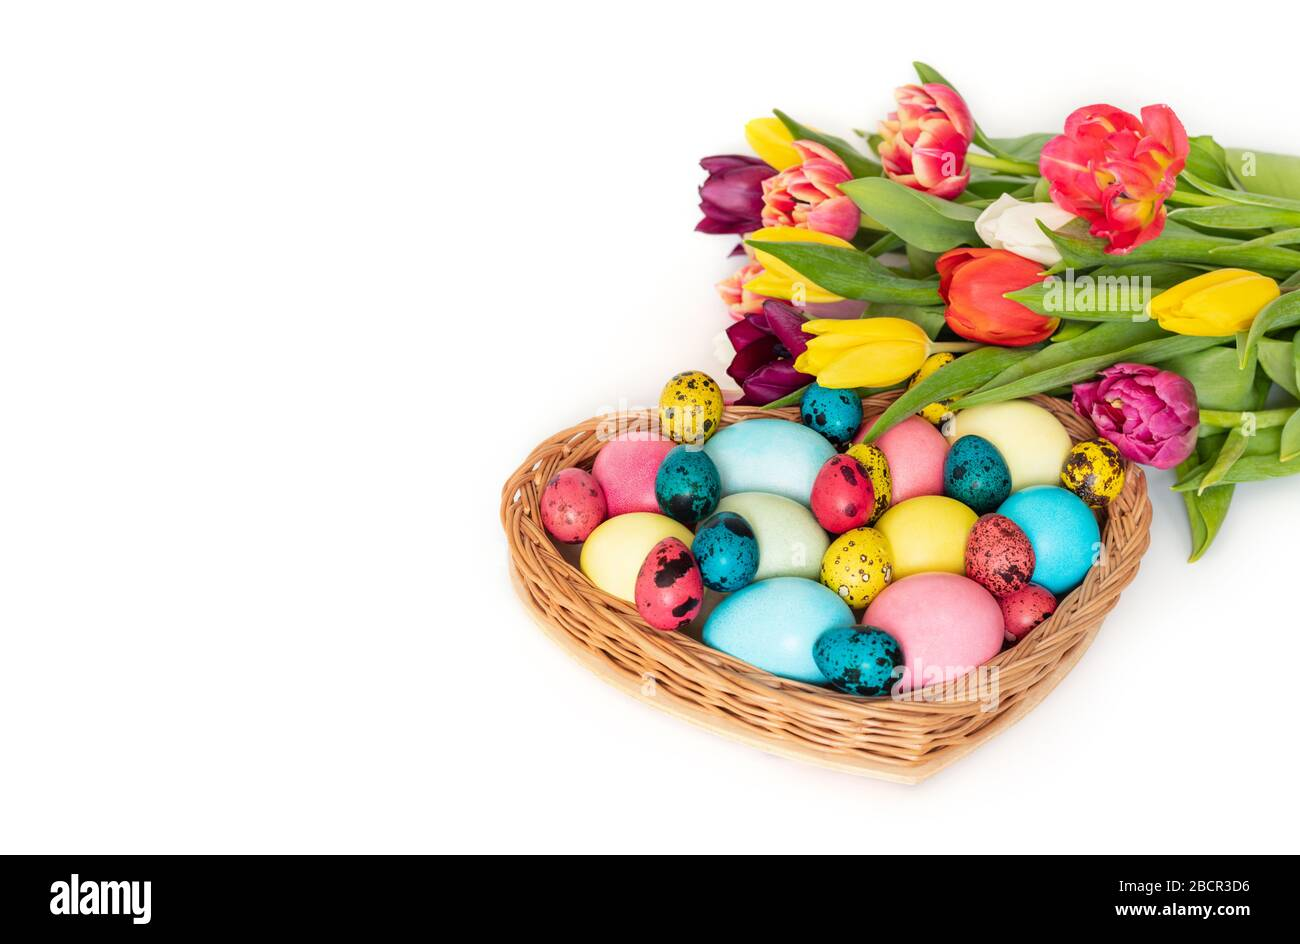 Easter colorful eggs and a bouquet of spring tulip flowers on a white background. Horizontal orientation. Copy space. Stock Photo